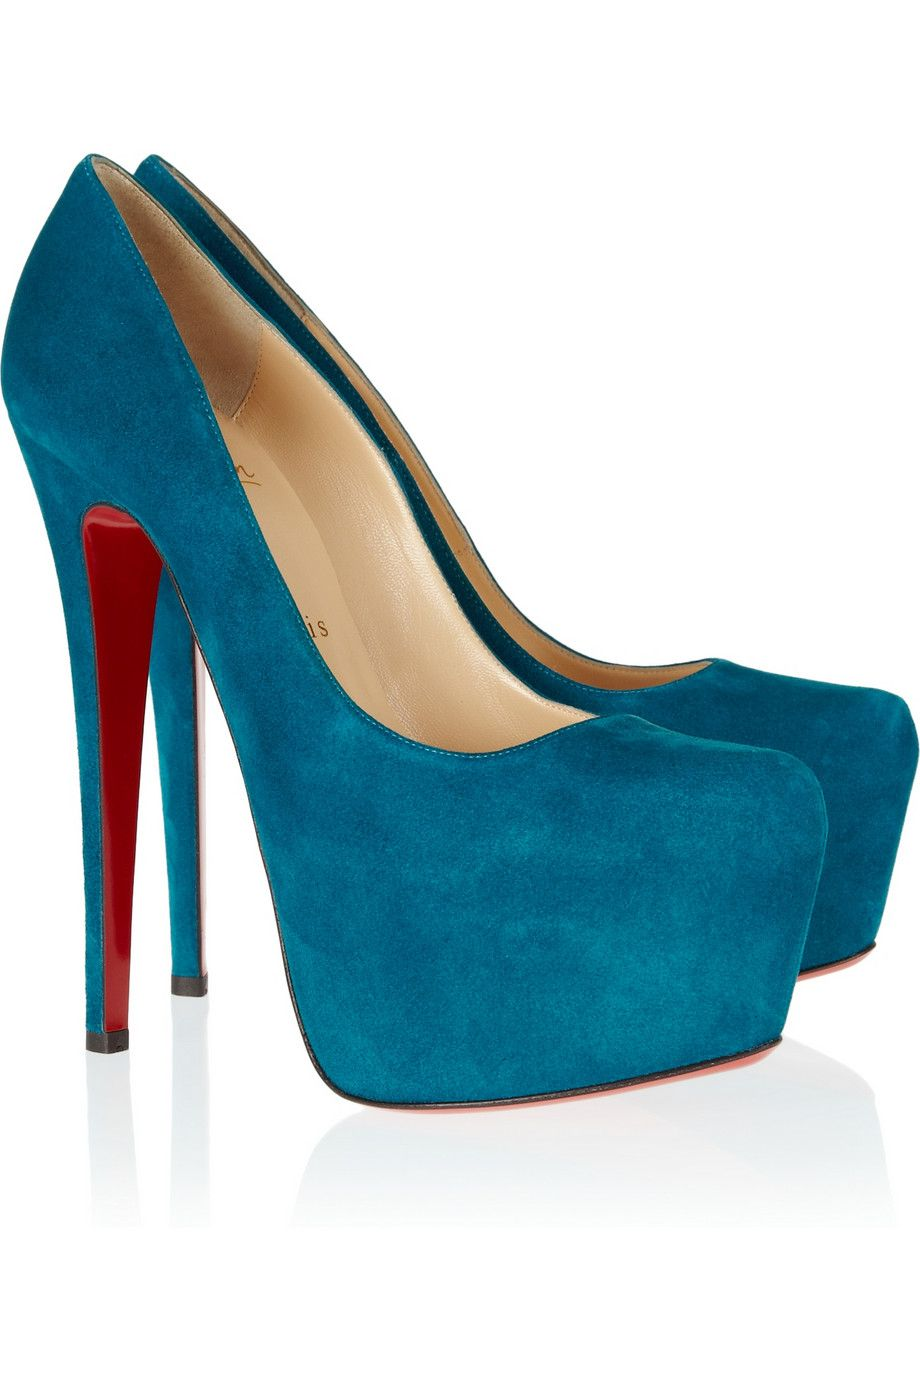 christian louboutin daffodile turquoise suede pumps